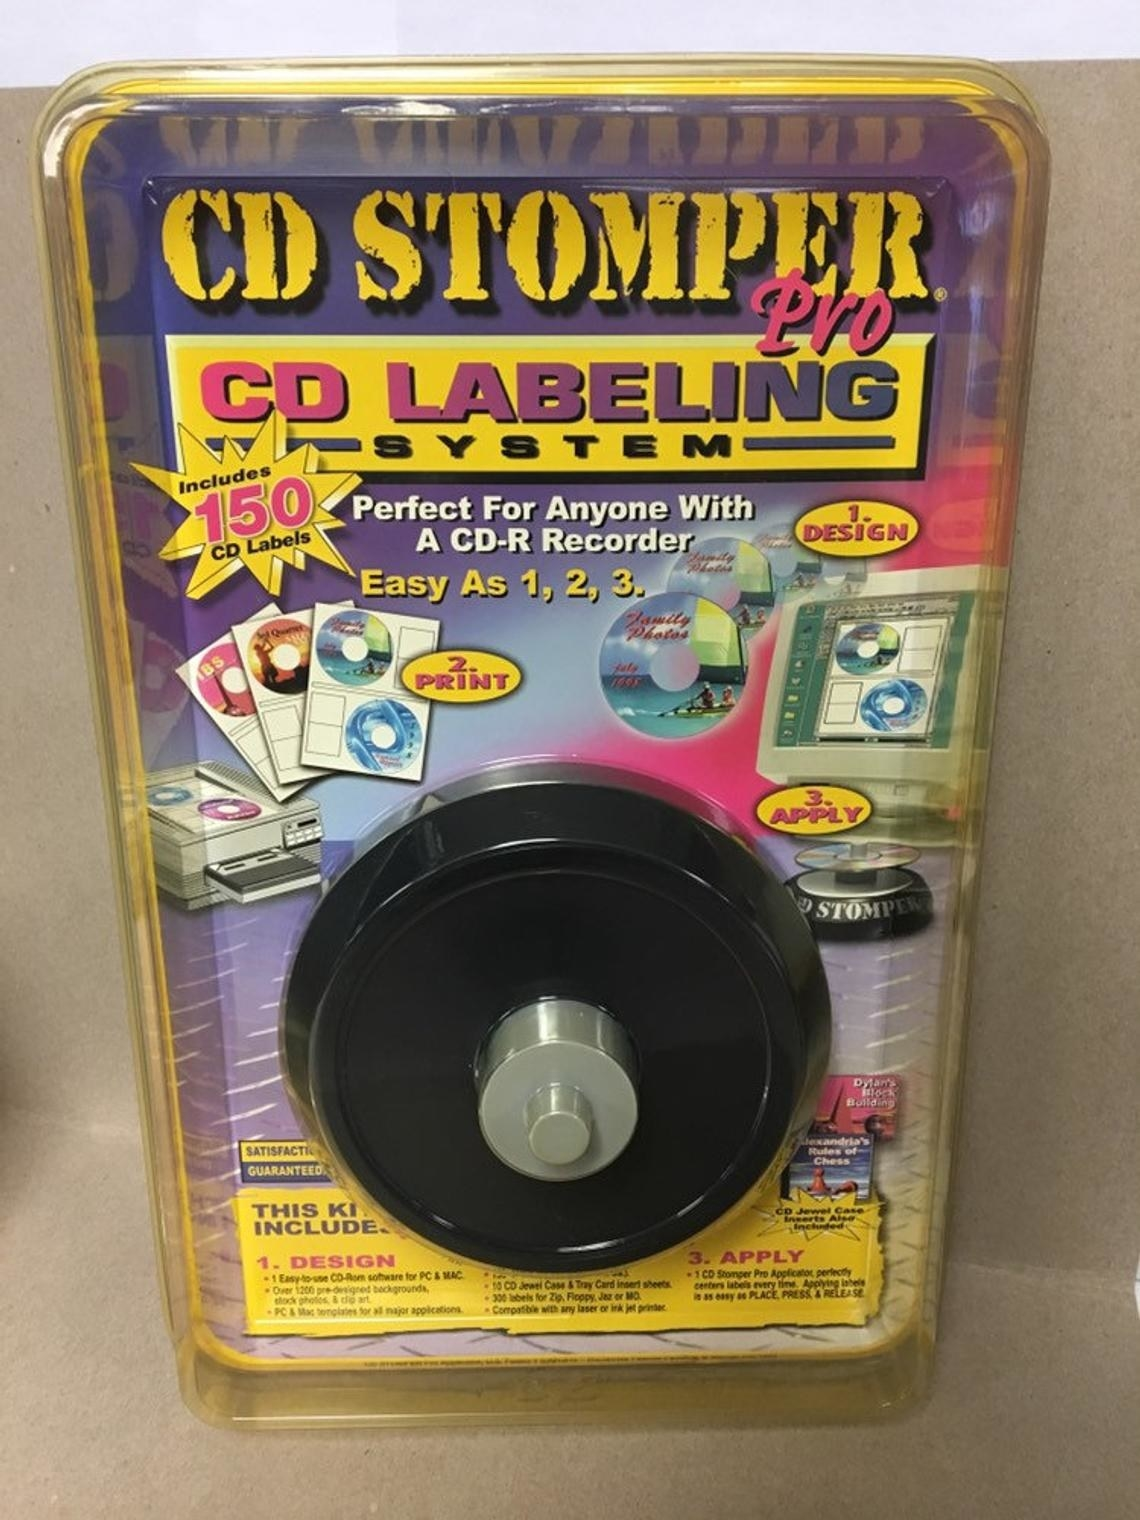 A CD Stomper label maker still in the package